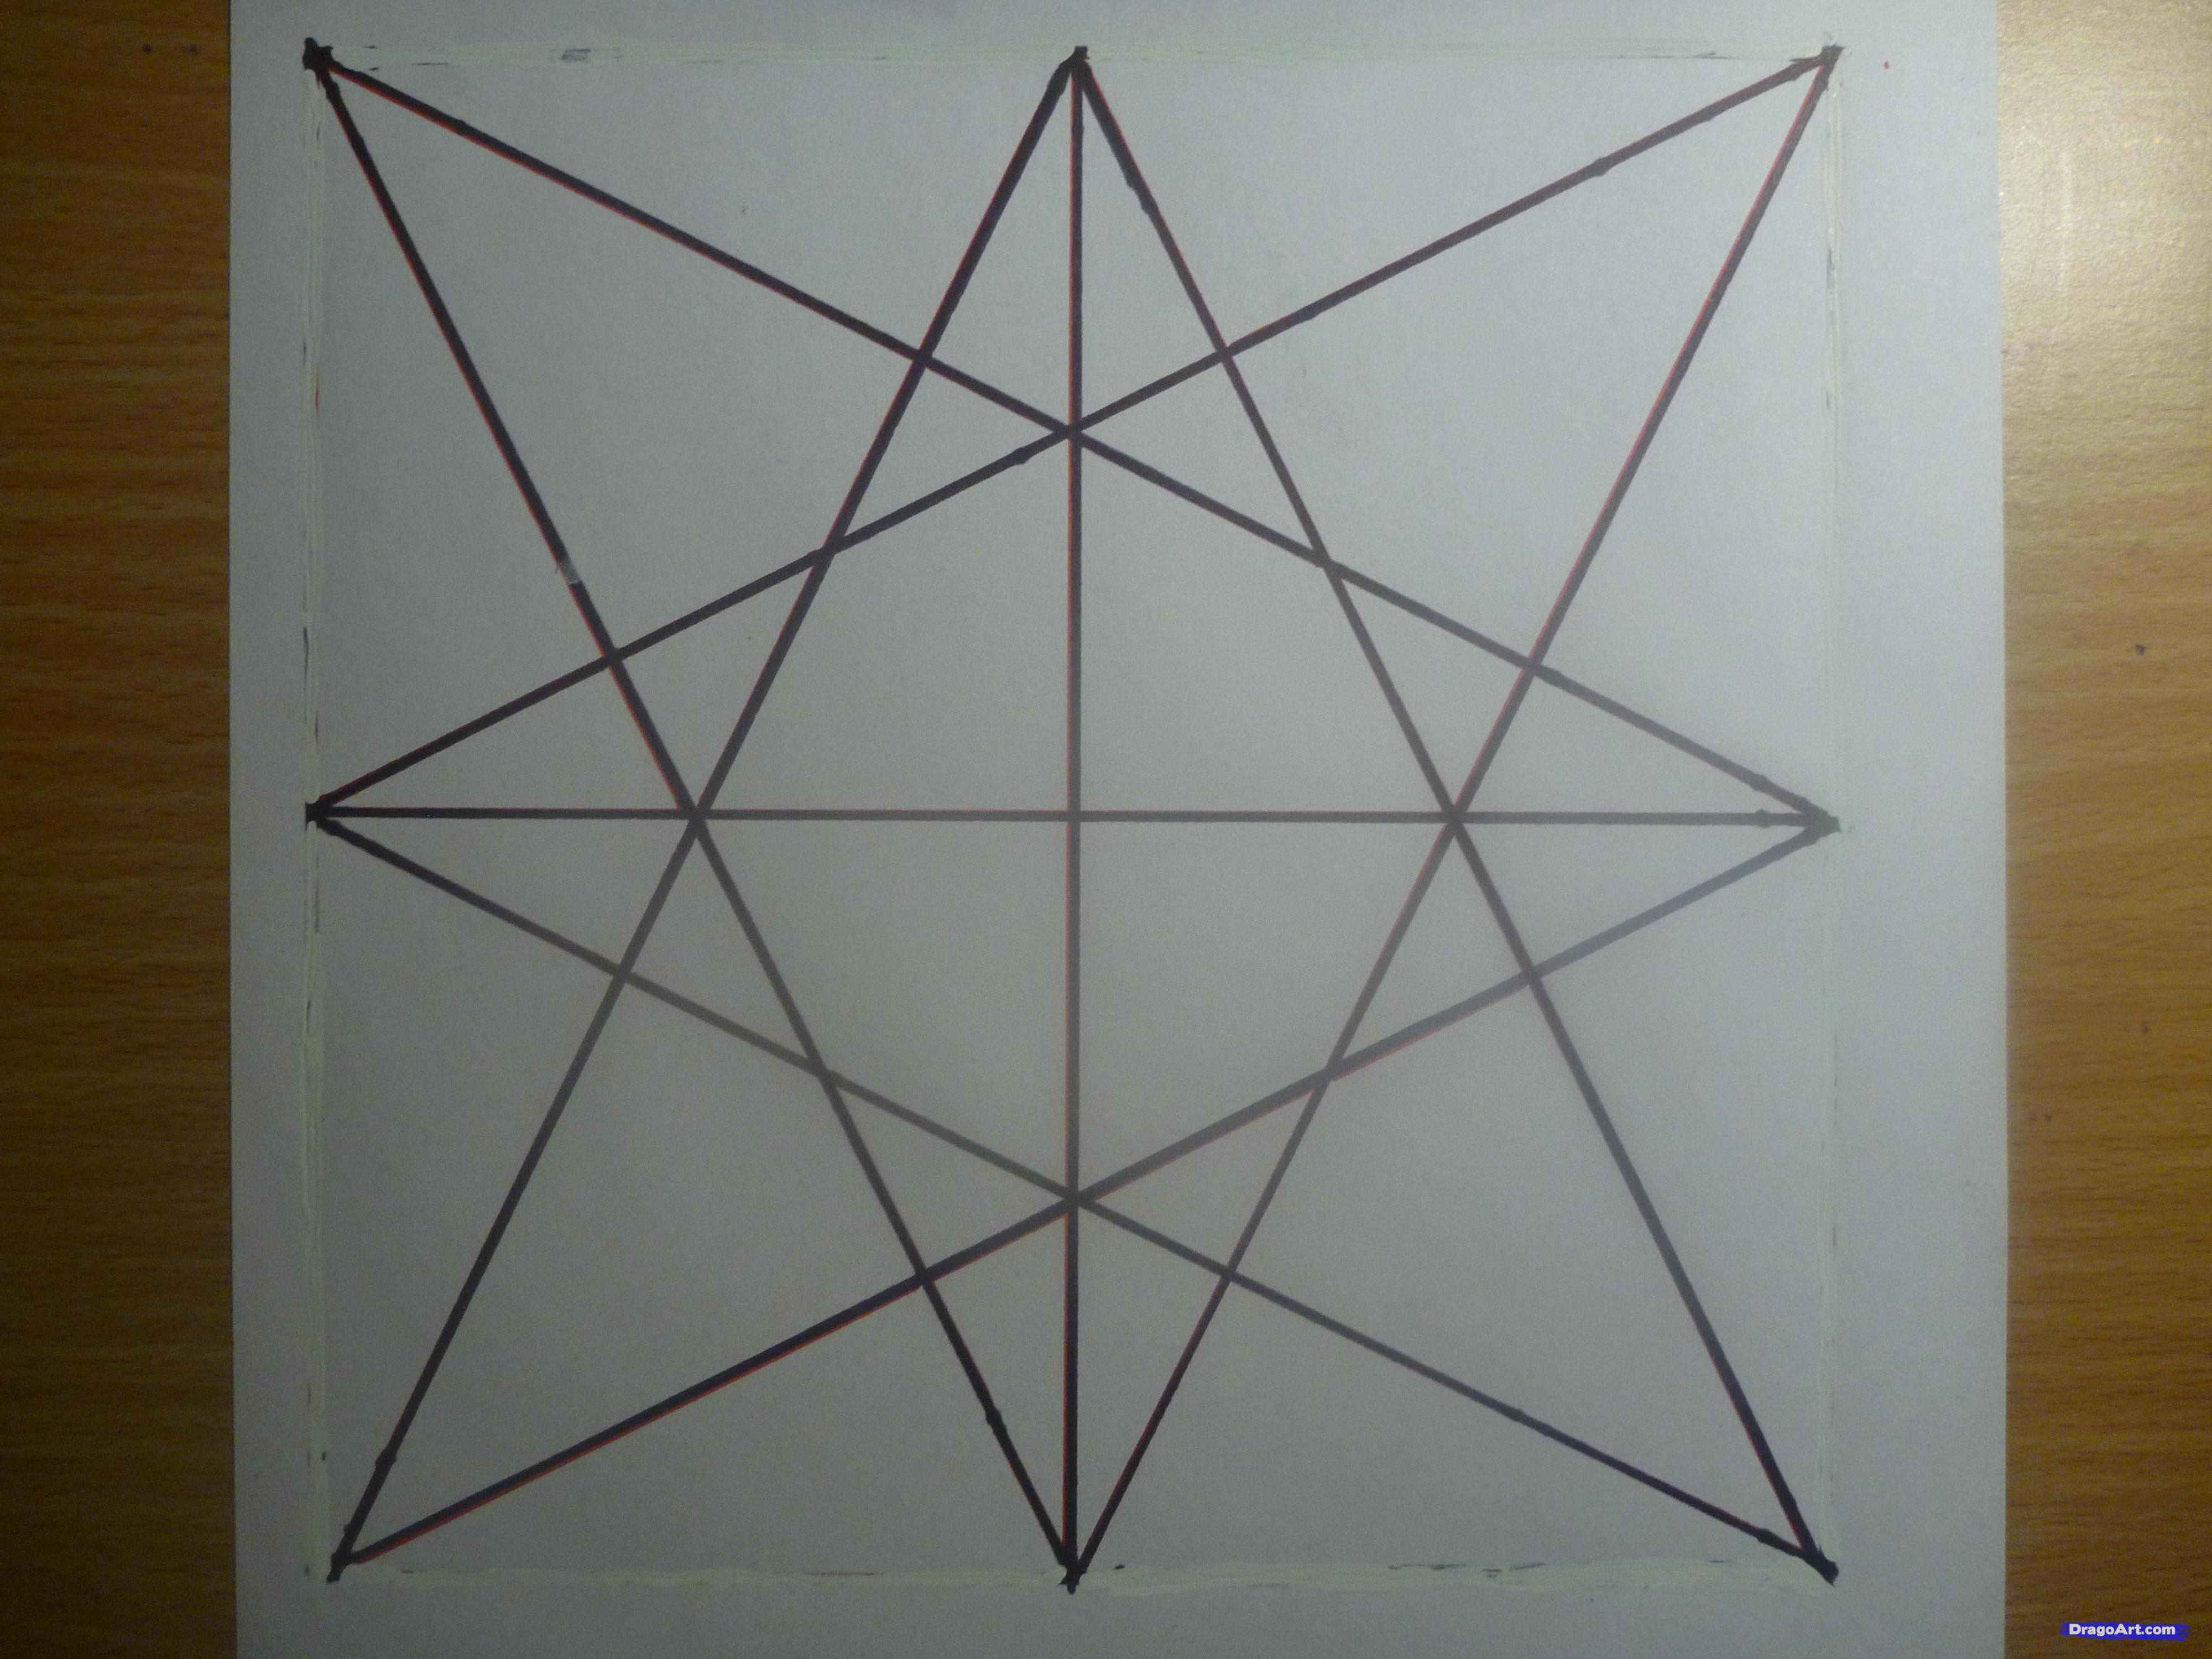 Drawn star sided Star Eight to Pointed Step